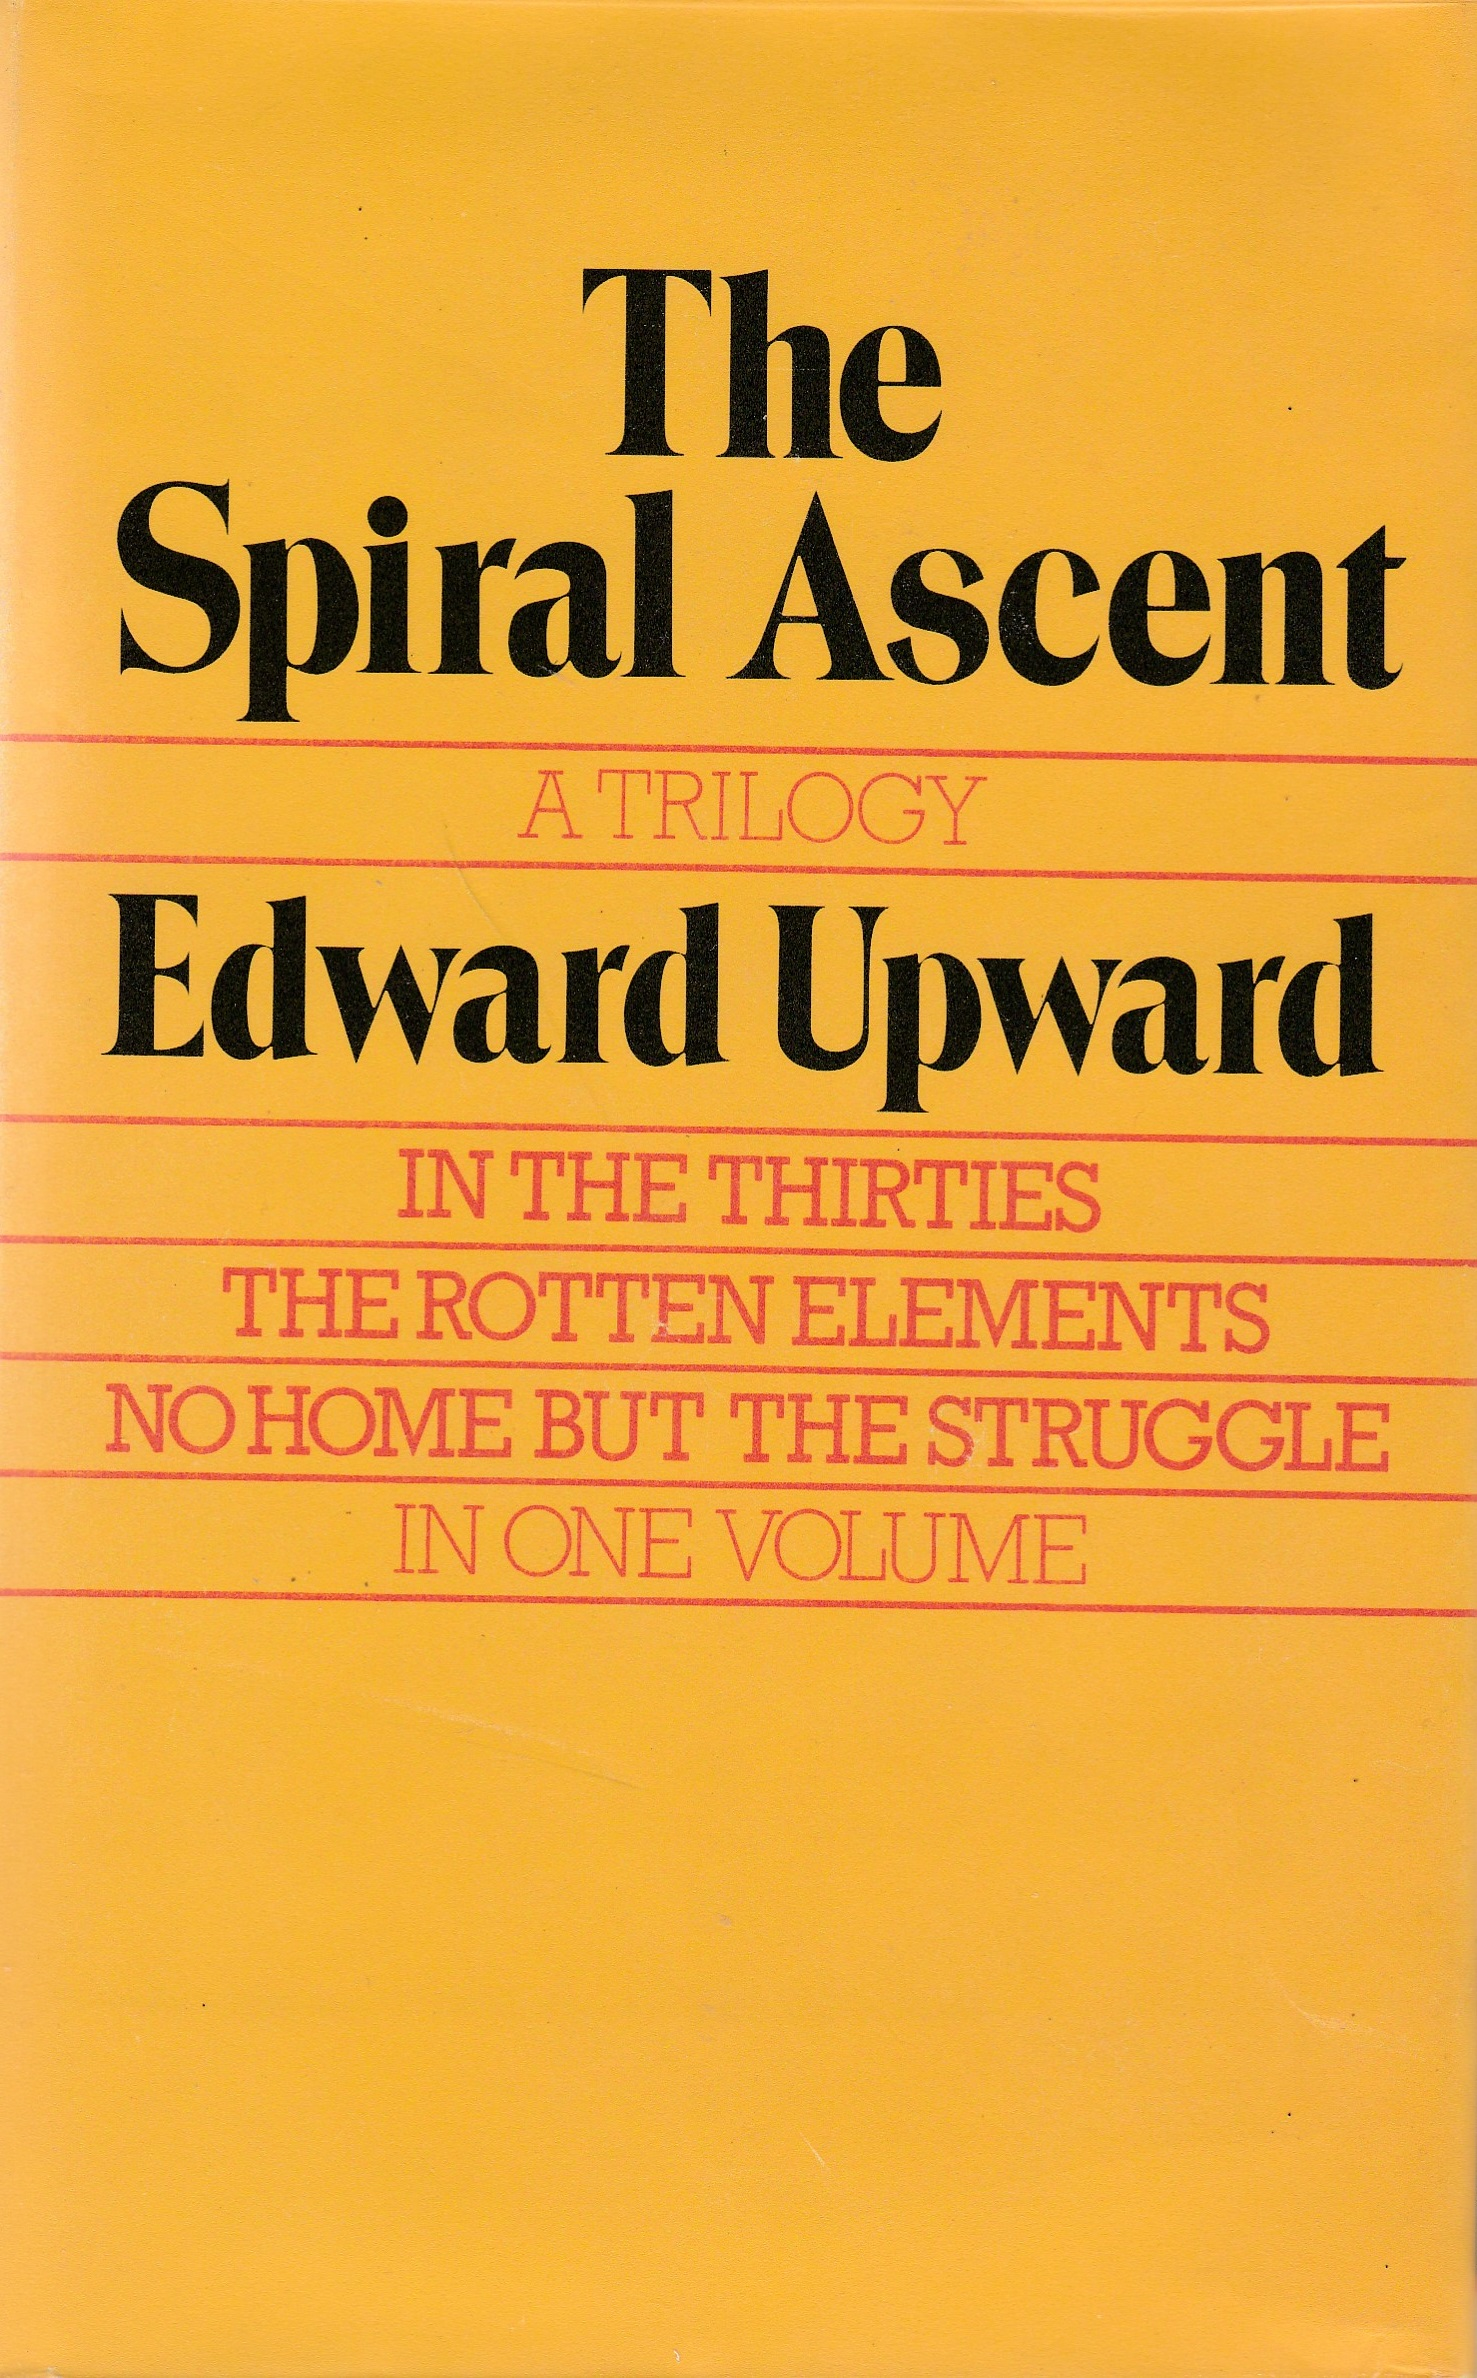 The Spiral Ascent